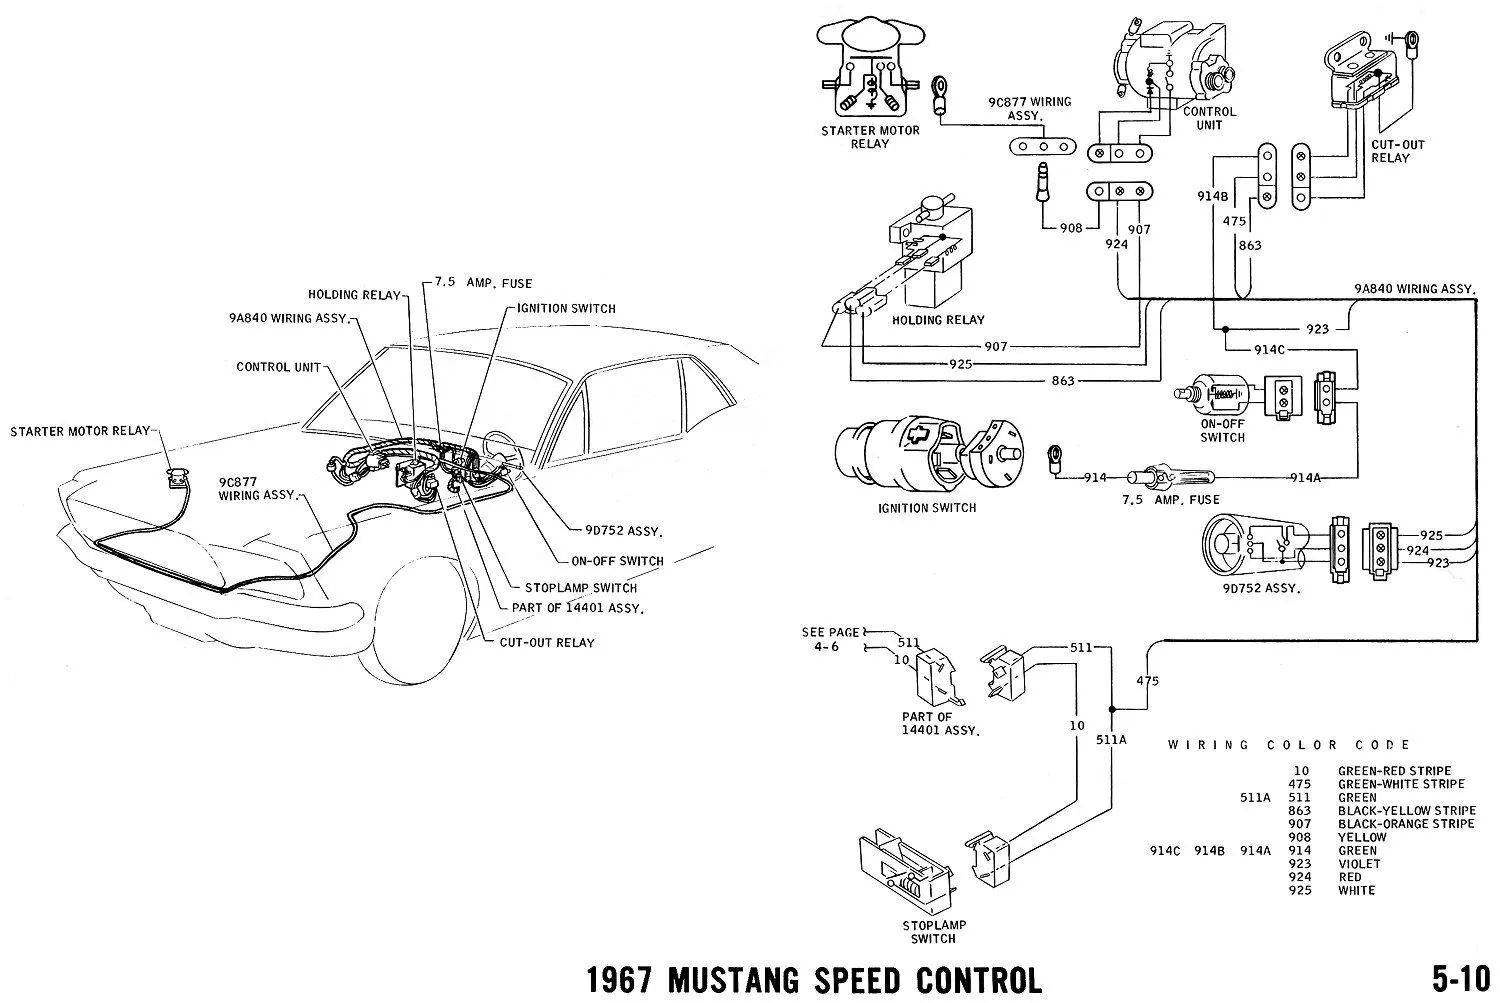 nippondenso alternator internal regulator wiring diagram